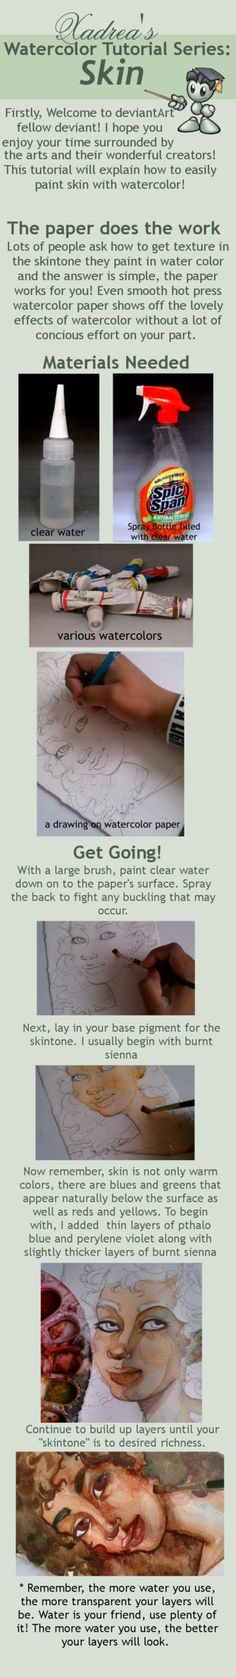 Watercolor Tutorial: Skin by Xadrea on deviantART